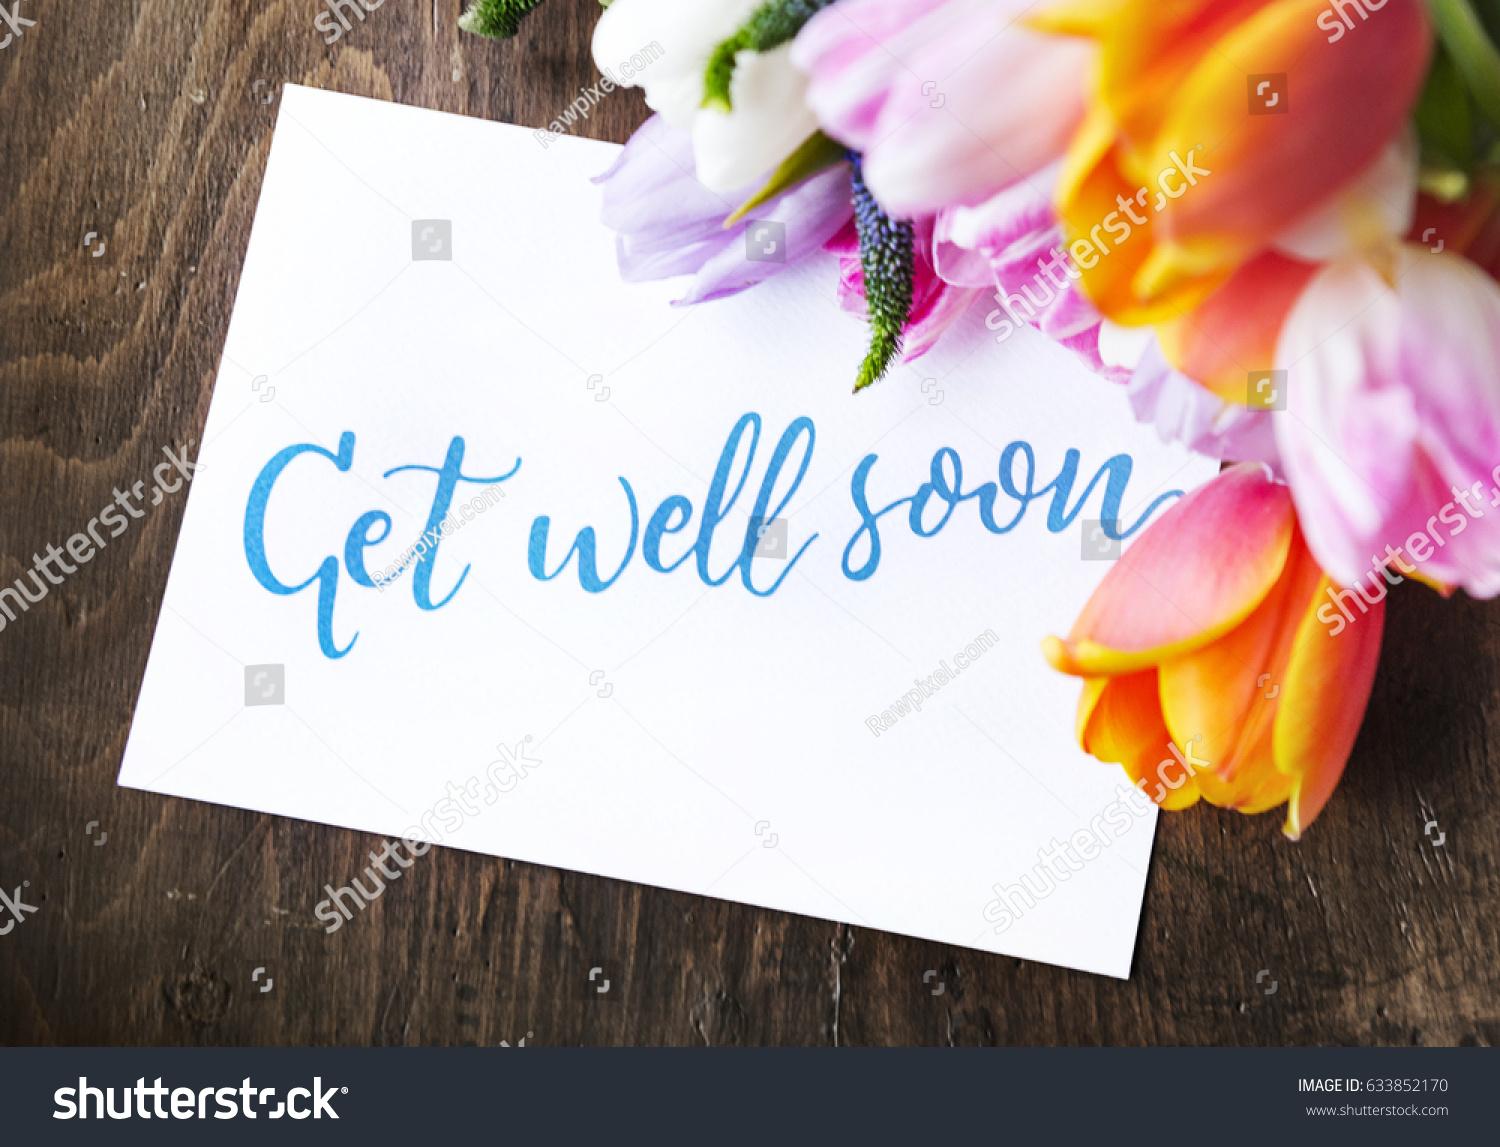 Tulips flowers bouquet get well soon stock photo 633852170 tulips flowers bouquet with get well soon wishing card dhlflorist Images